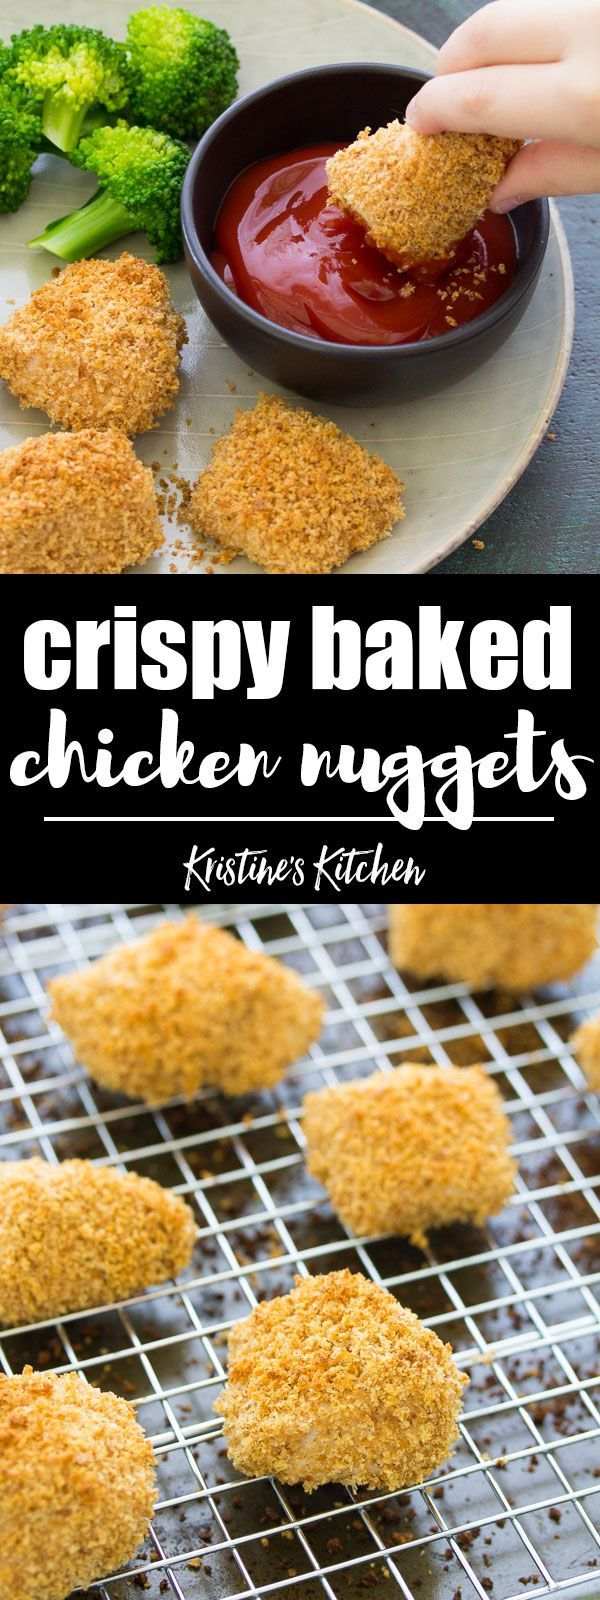 An easy recipe for how to make crispy baked chicken nuggets for kids. Egg free and dairy free. Use either homemade or store bought breadcrumbs. Your kids will love these healthy homemade chicken nuggets! They are freezer friendly - make ahead a big batch for meal prep! #kidfriendly #chickenrecipes #healthyrecipes #mealprep